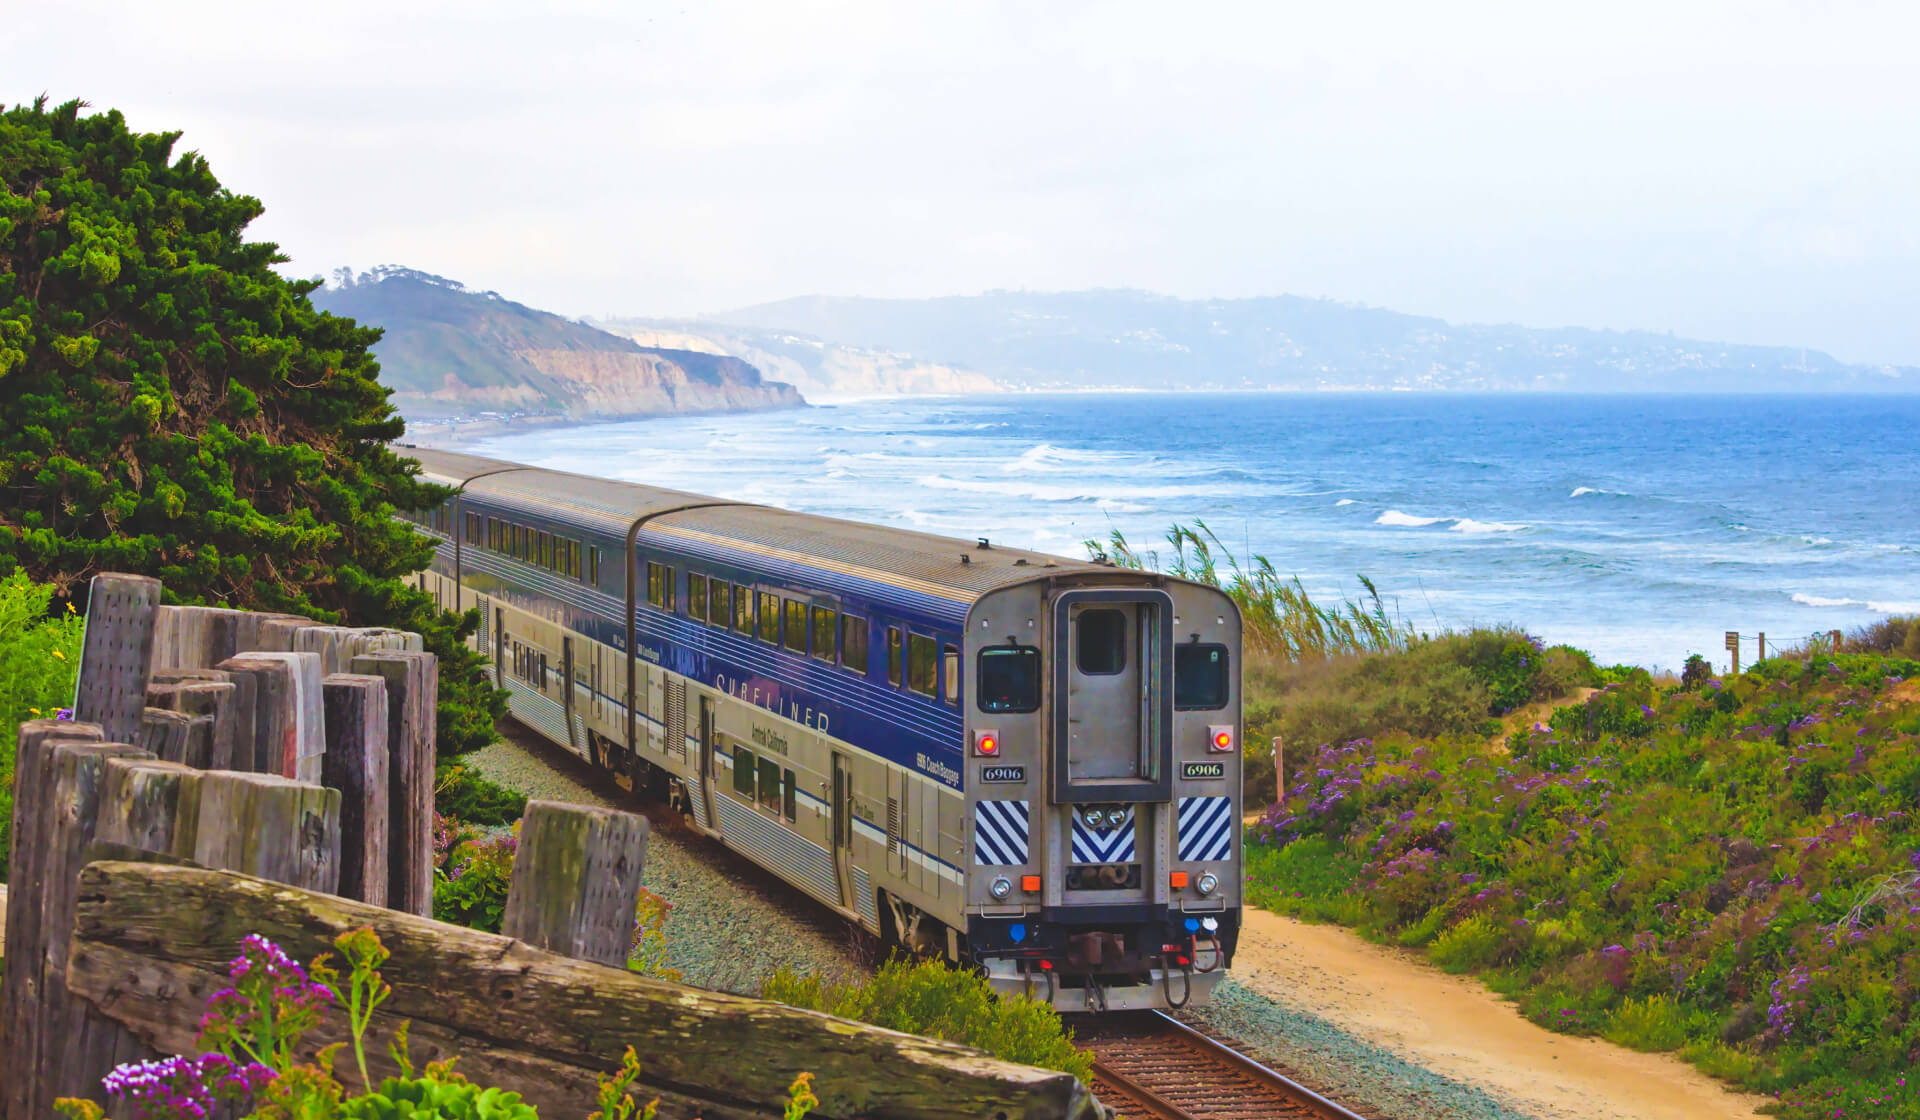 Train passing a beautiful blue coastline, green grass, and purple flowers